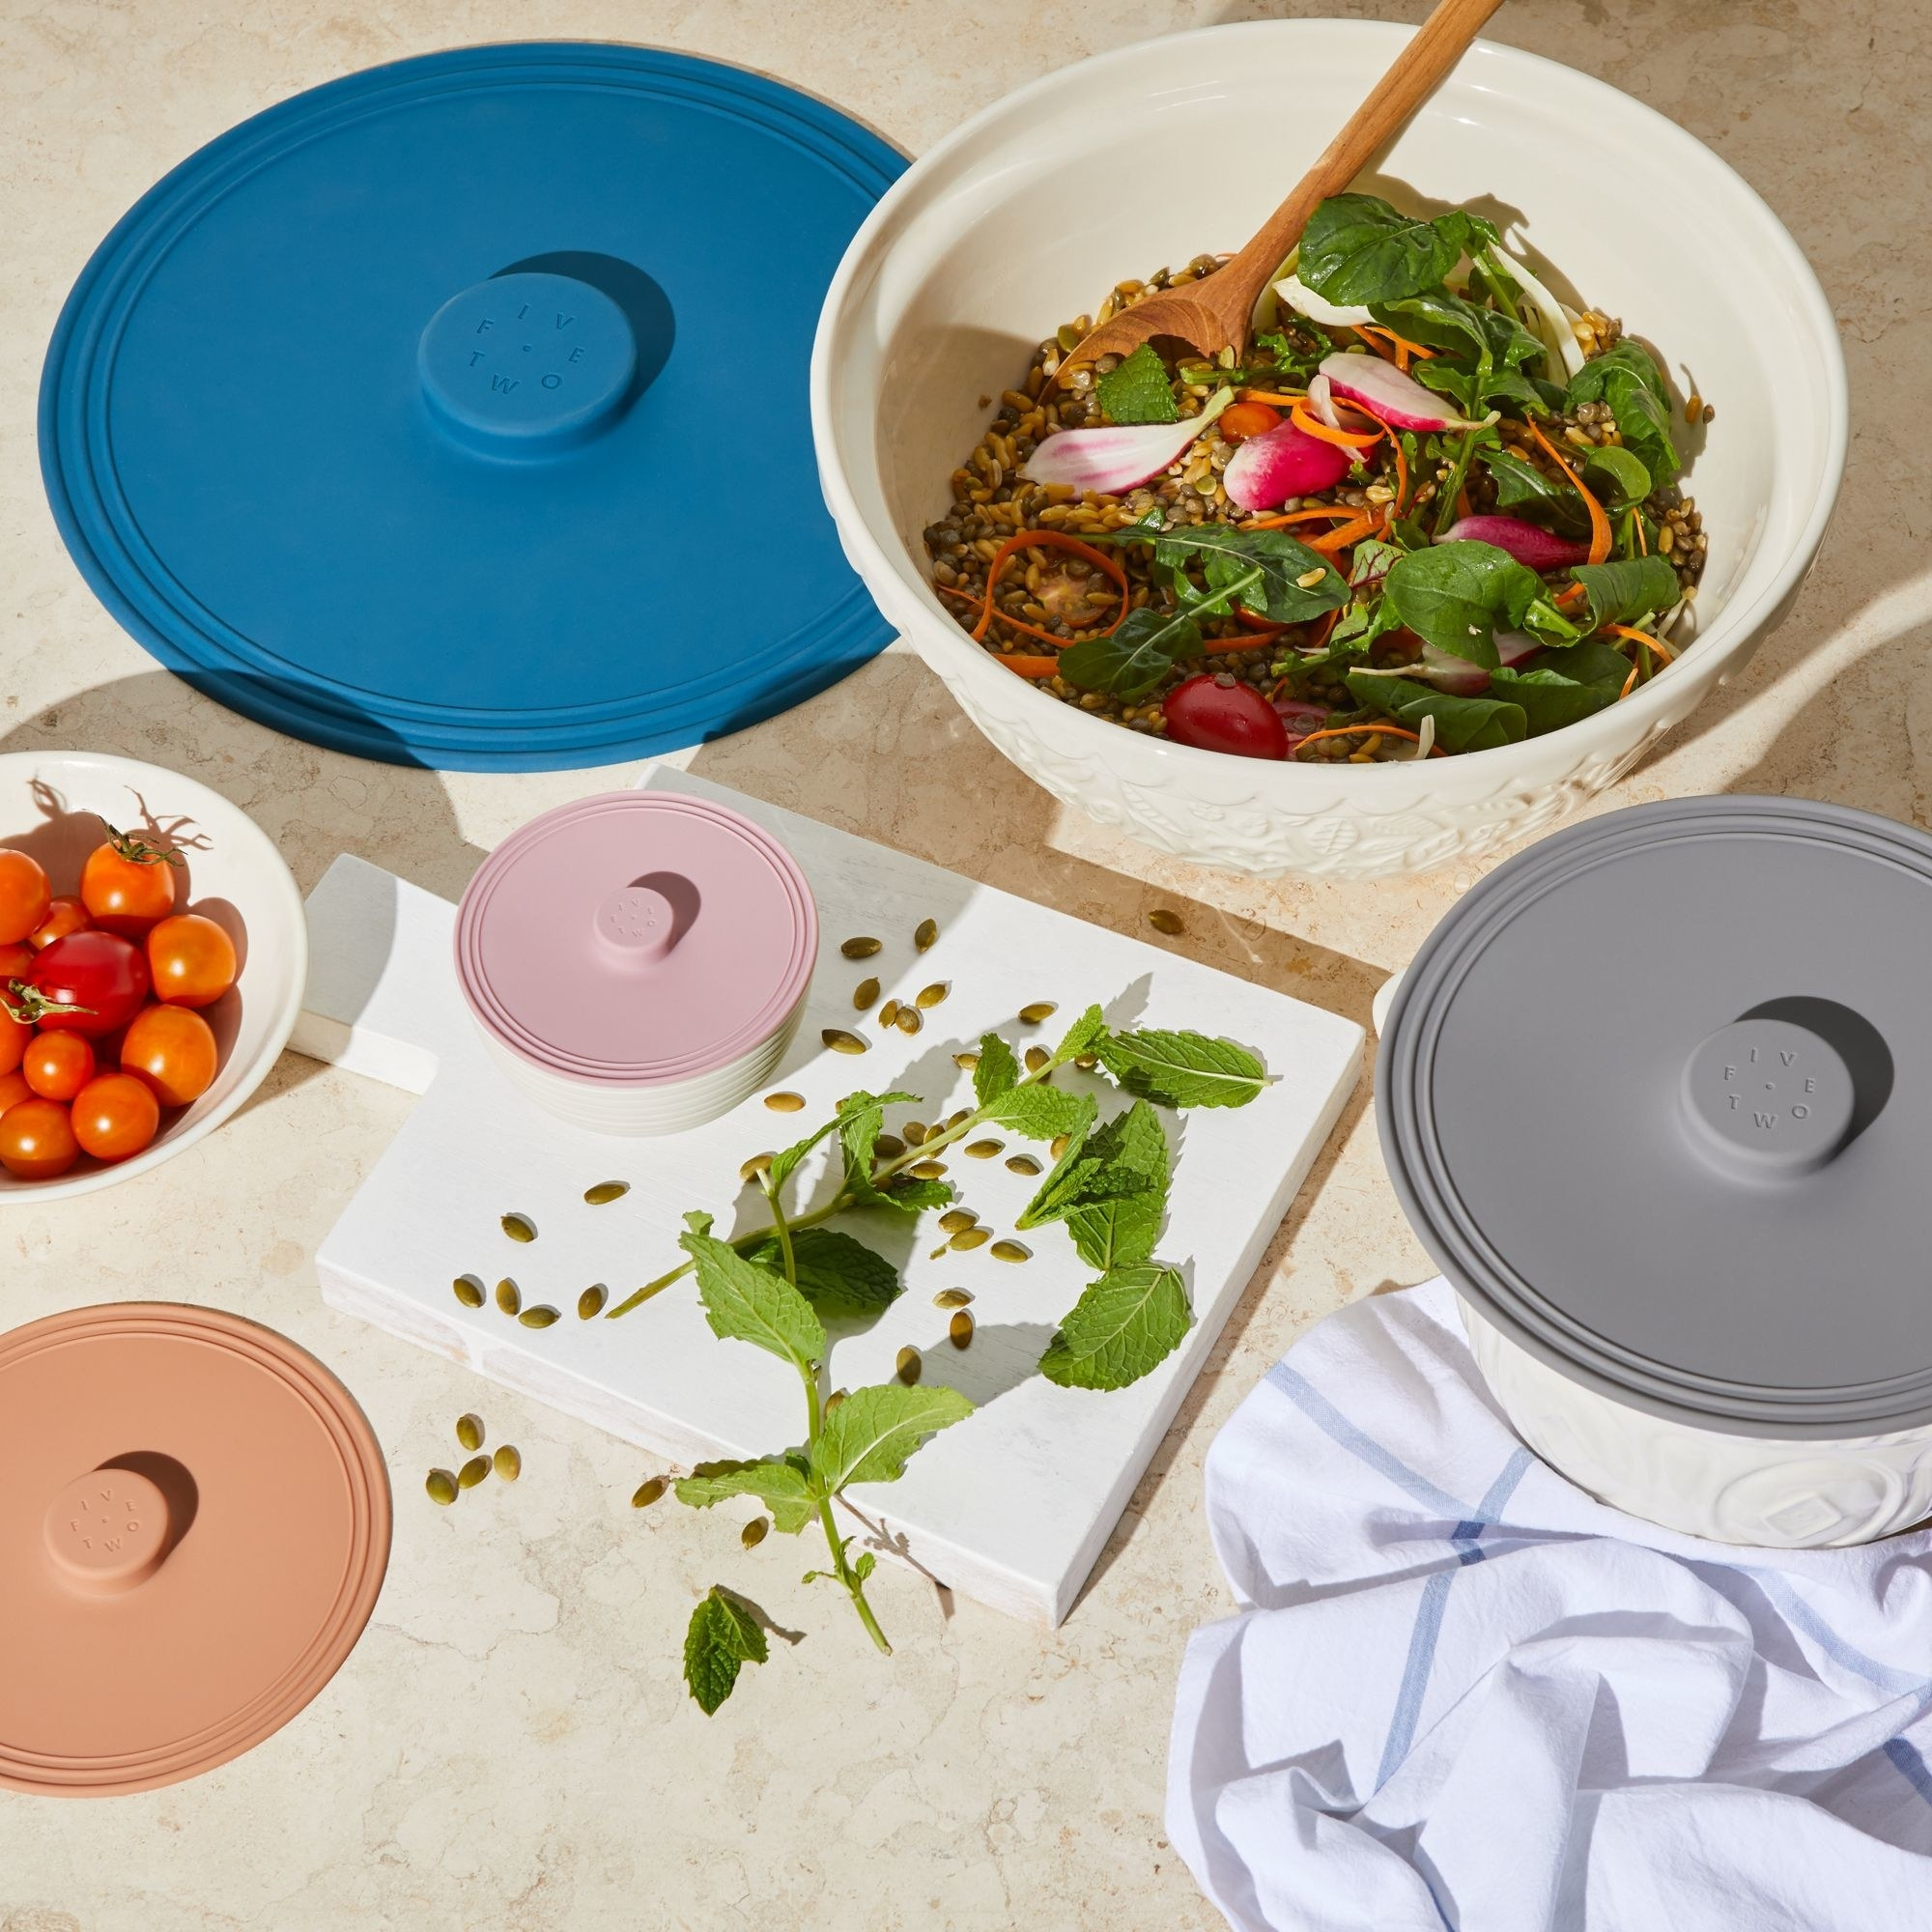 The Best Places To Buy Kitchen Products